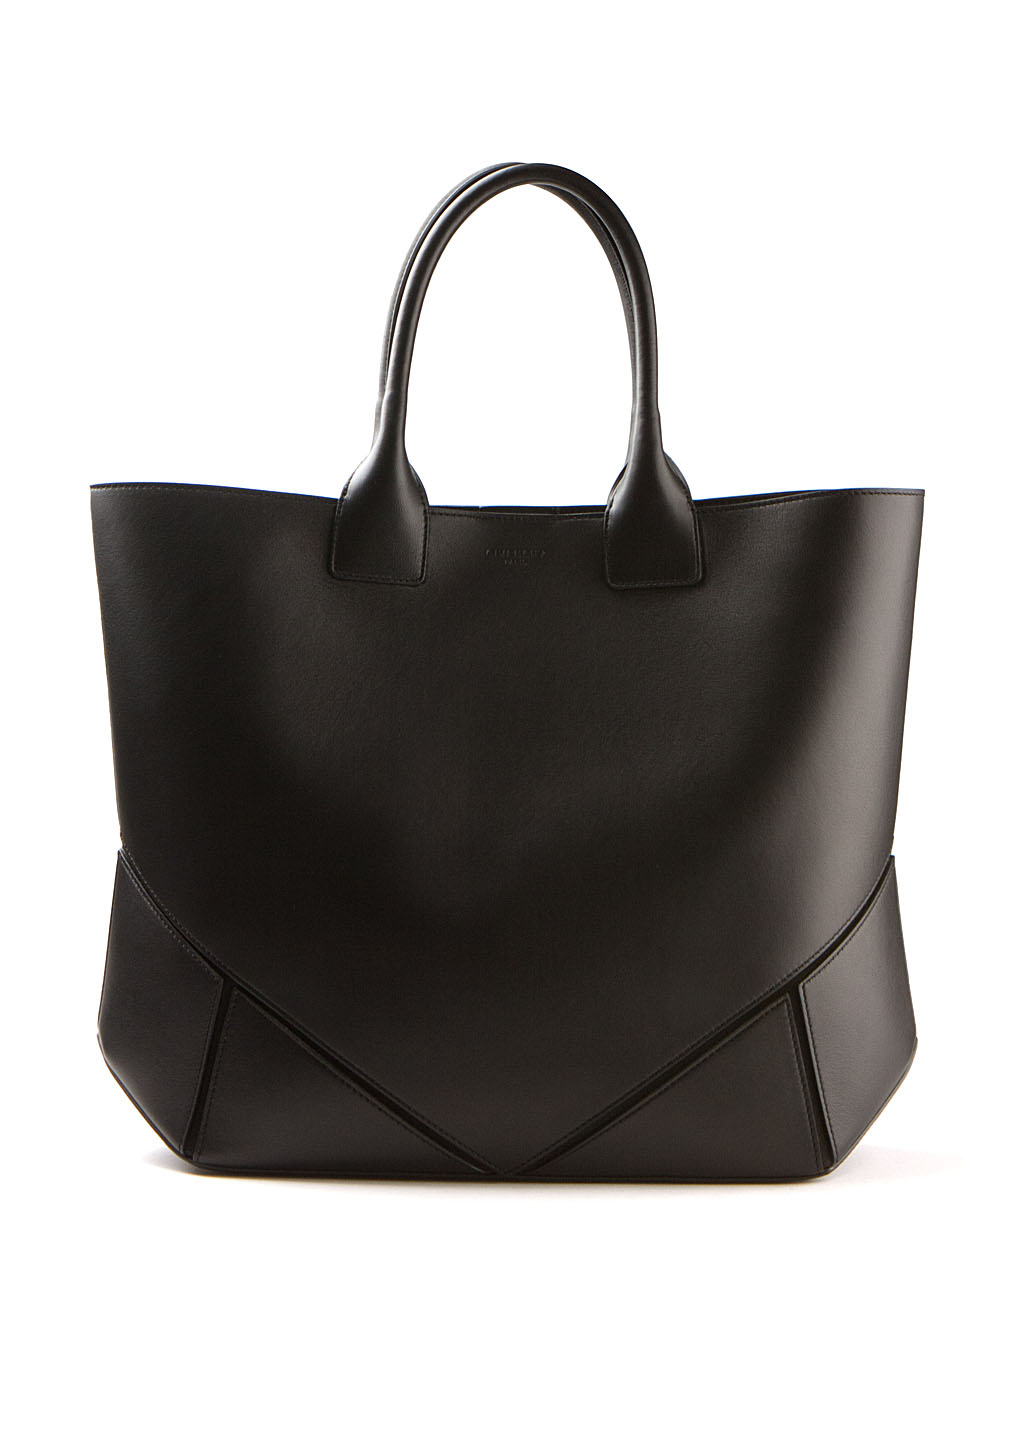 givenchy black leather tote bag in black lyst